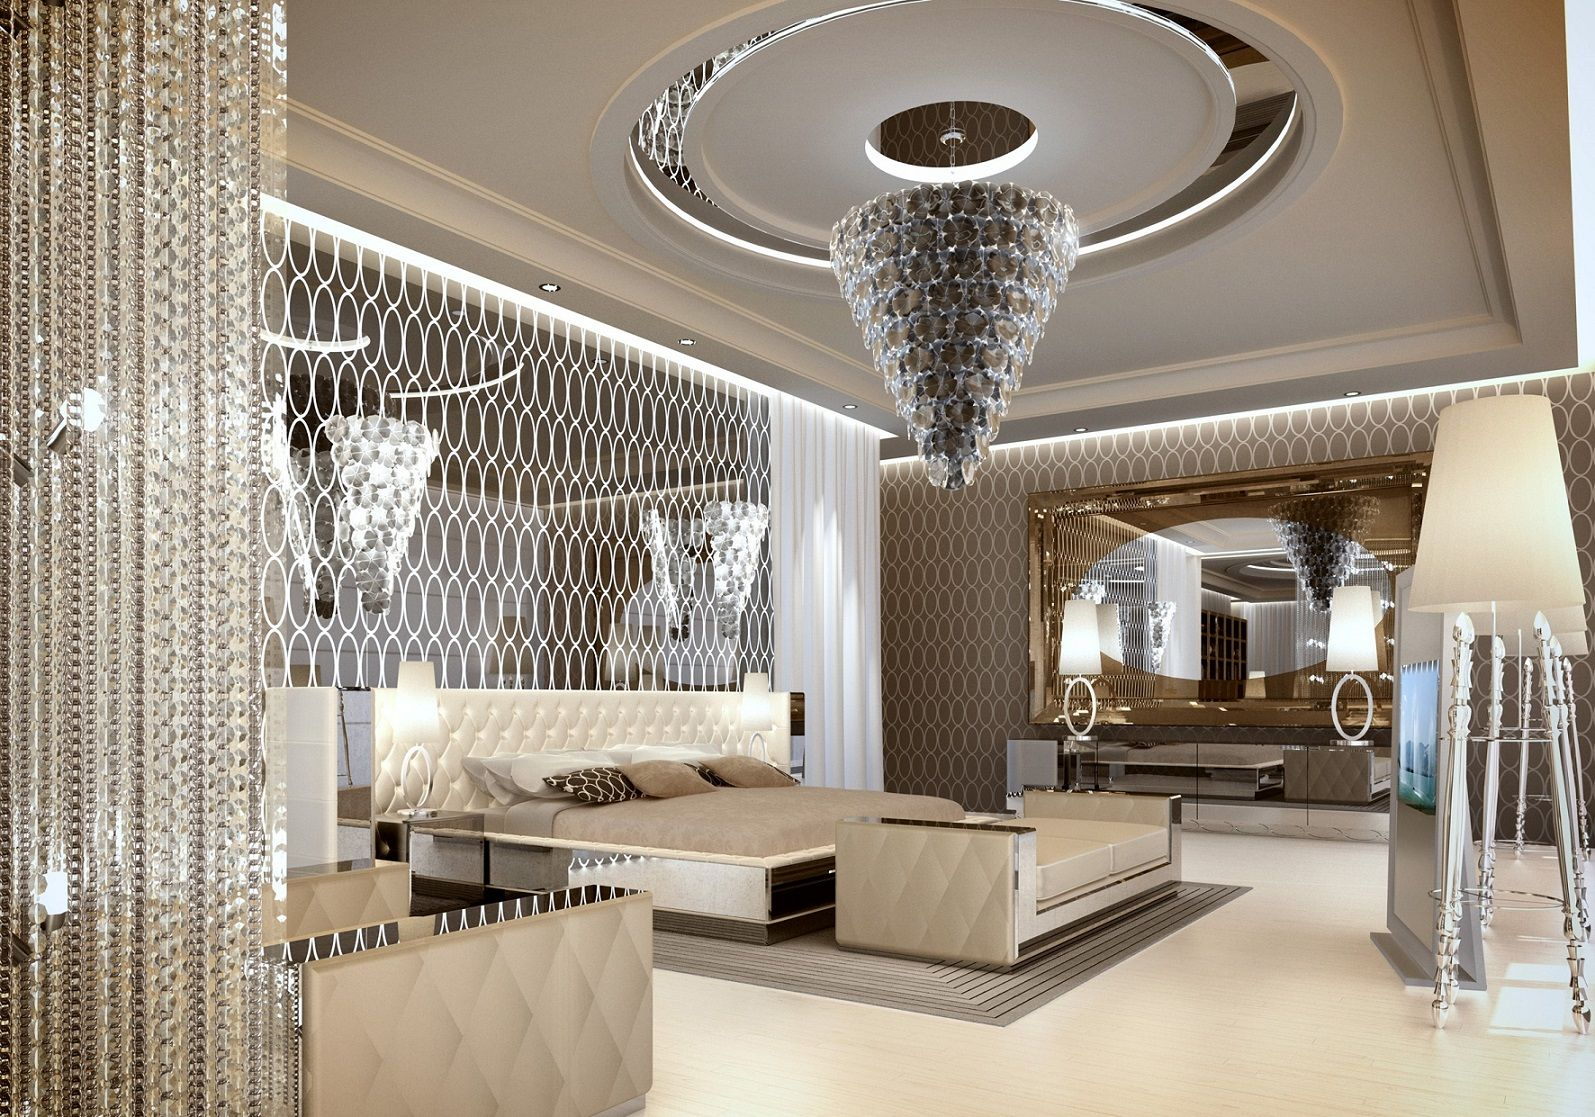 Ultra high end hotel signature collection designer for Luxury hotel bedroom interior design